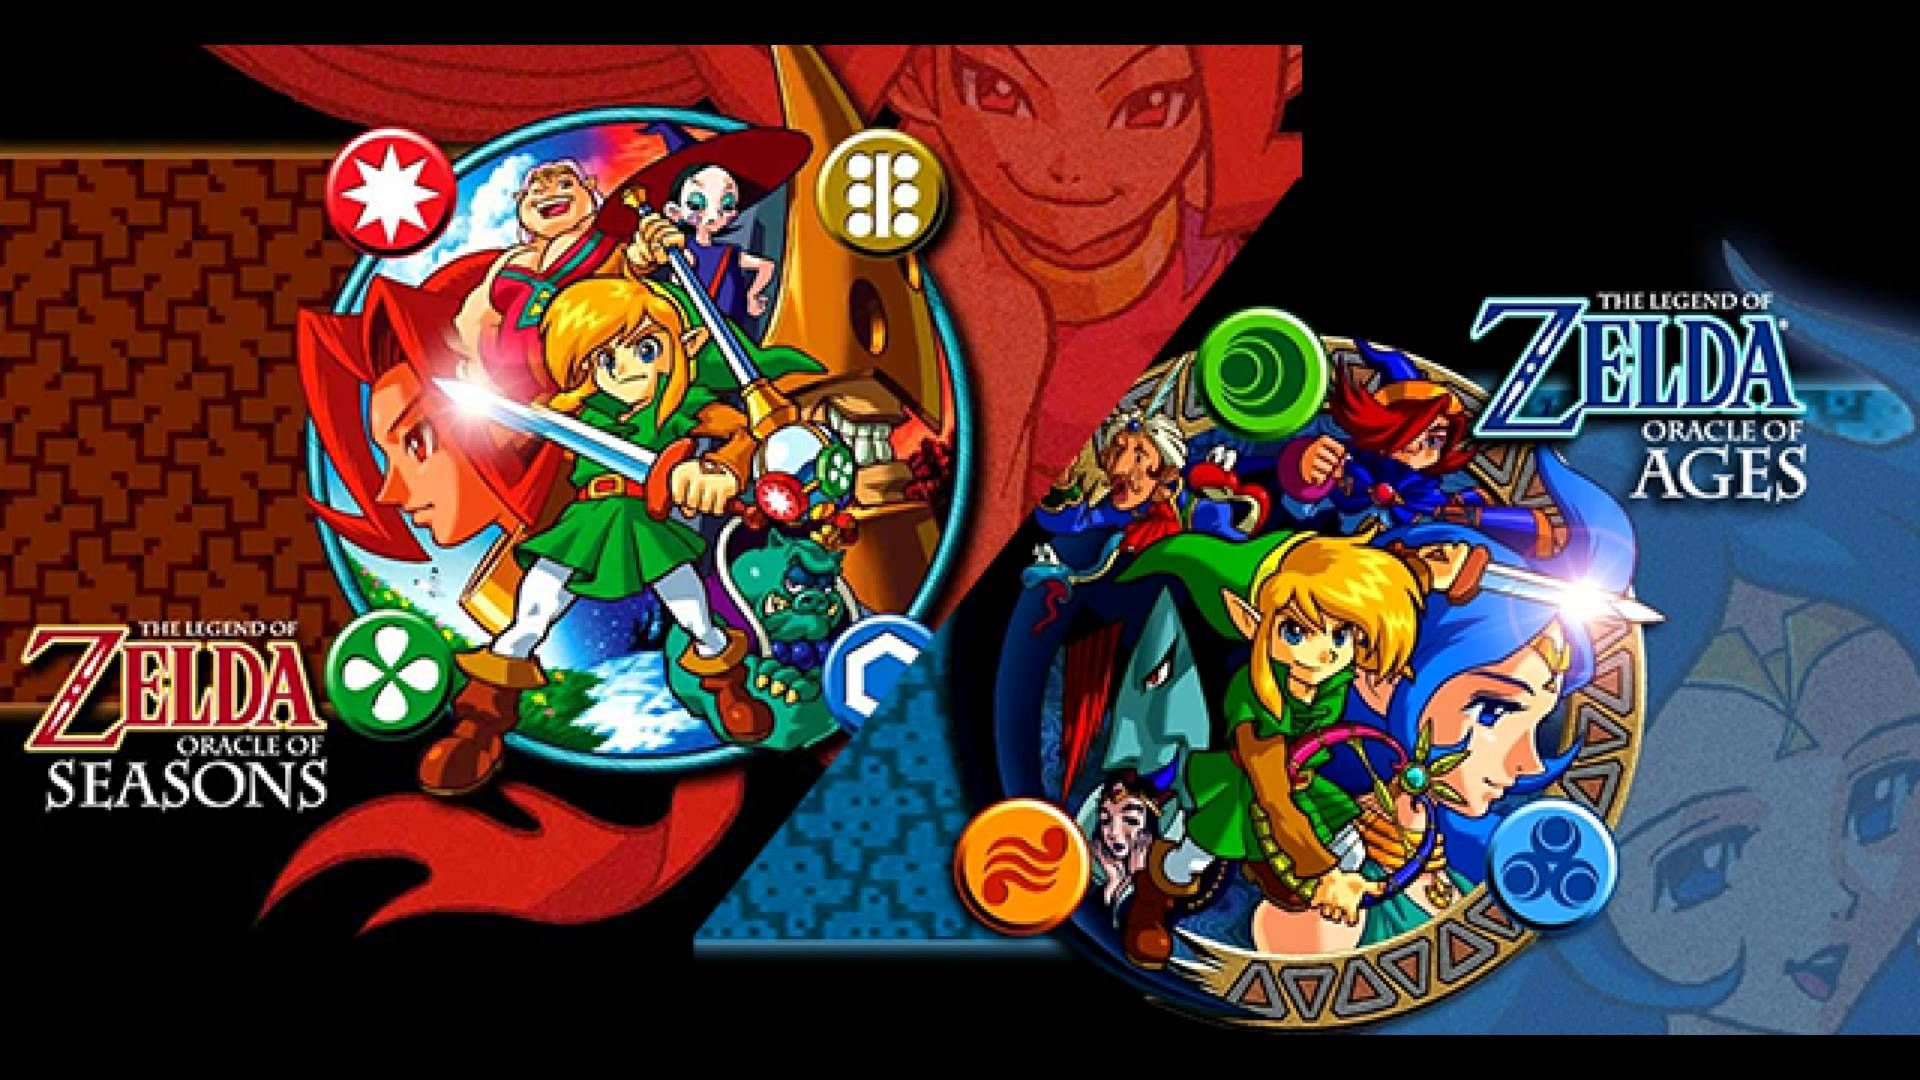 The Legend of Zelda: Oracle of Ages and Oracle of Seasons